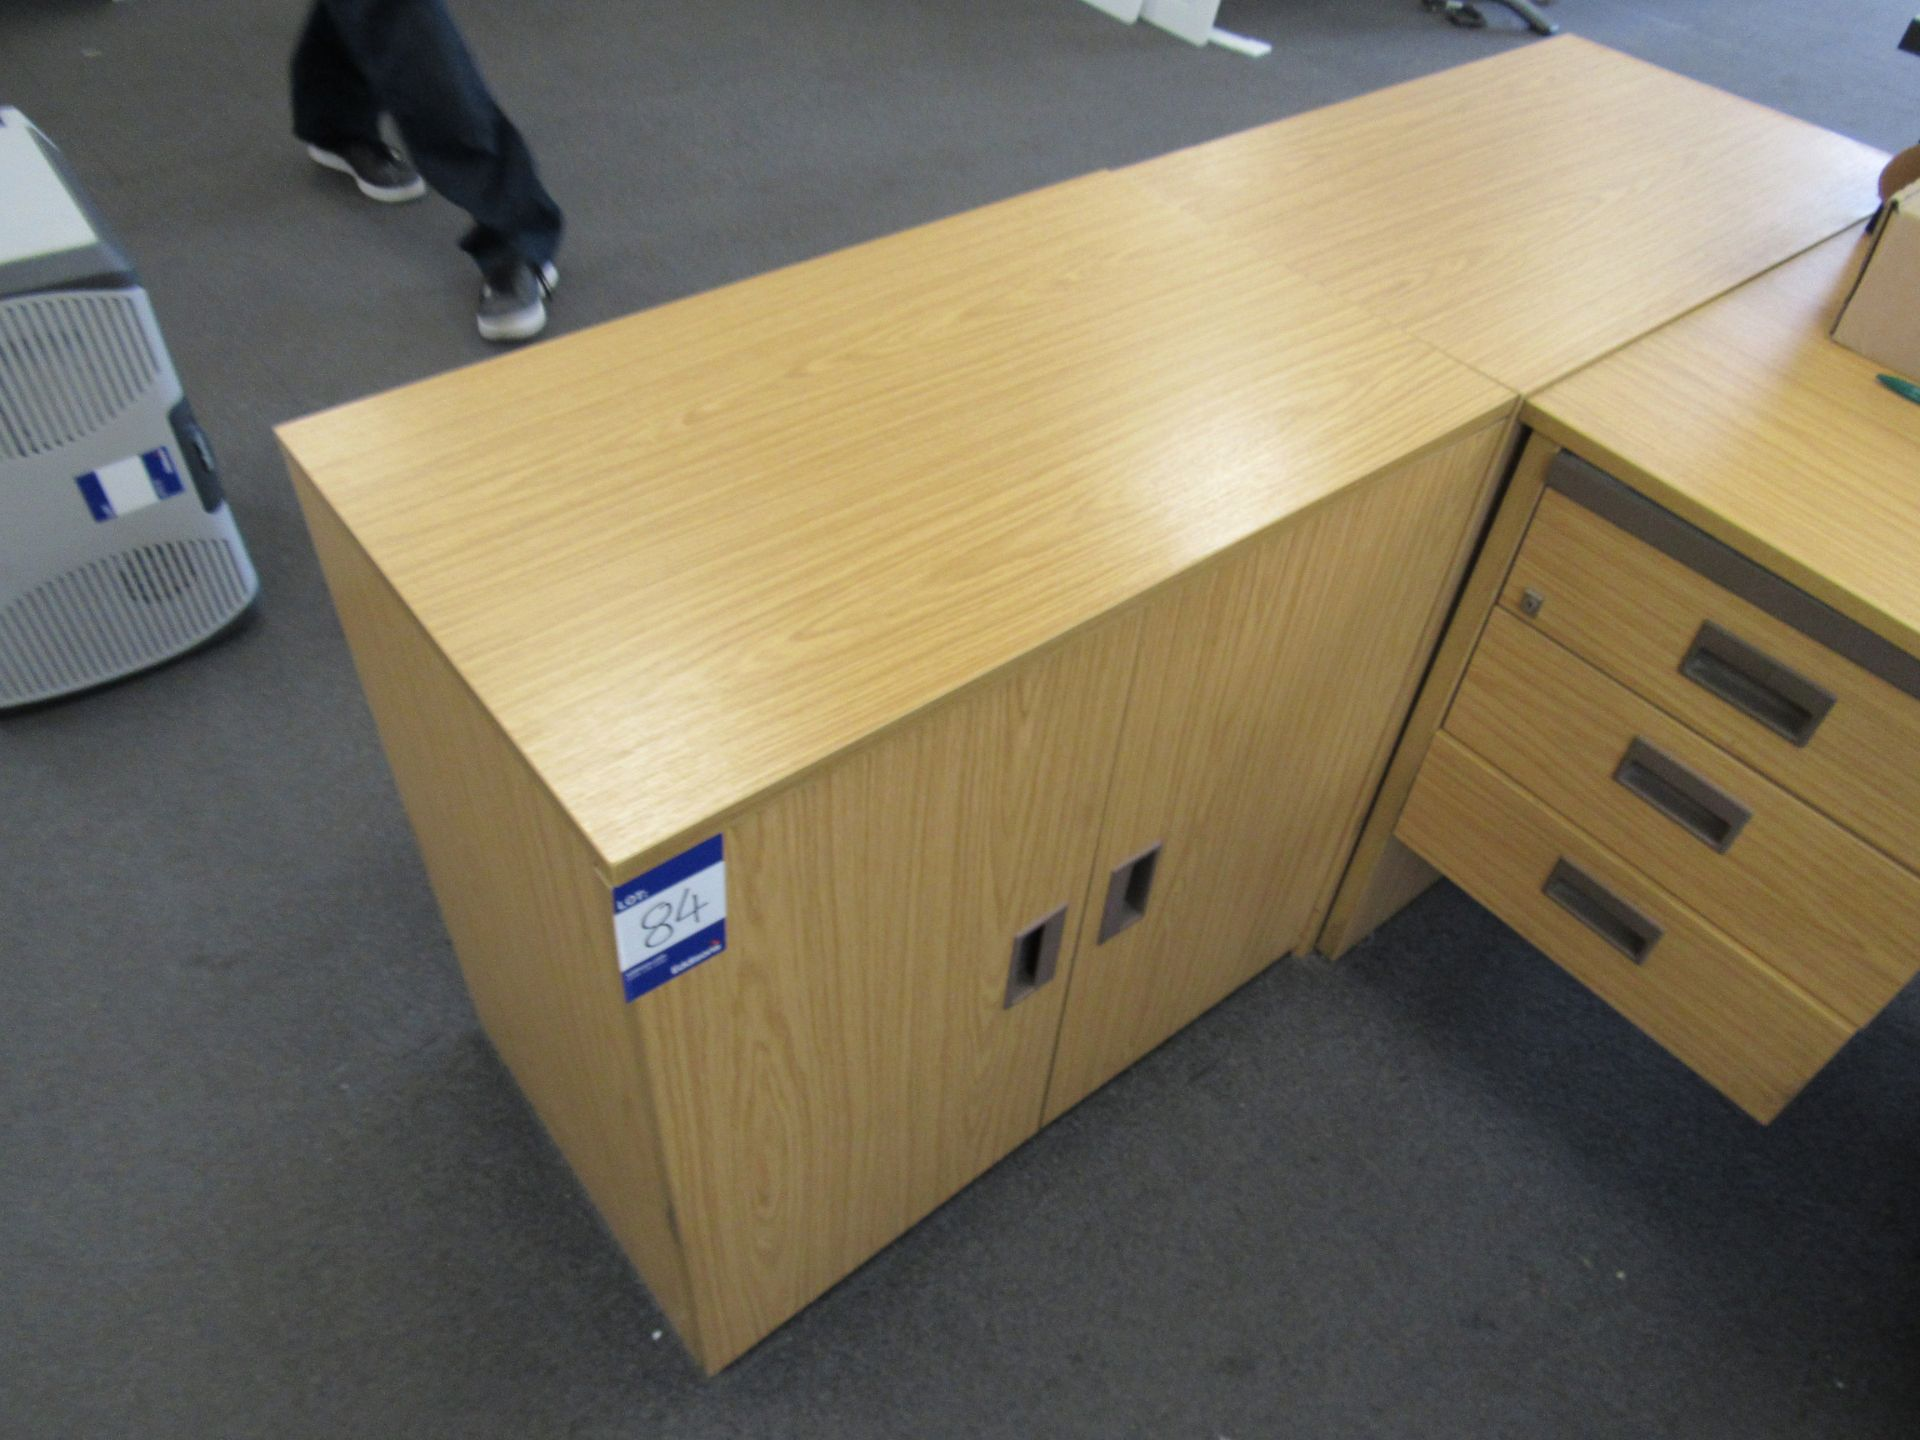 4 x Assorted low level double door cupboards (Approximately 750 x 710 x 450), to first floor office - Image 3 of 4